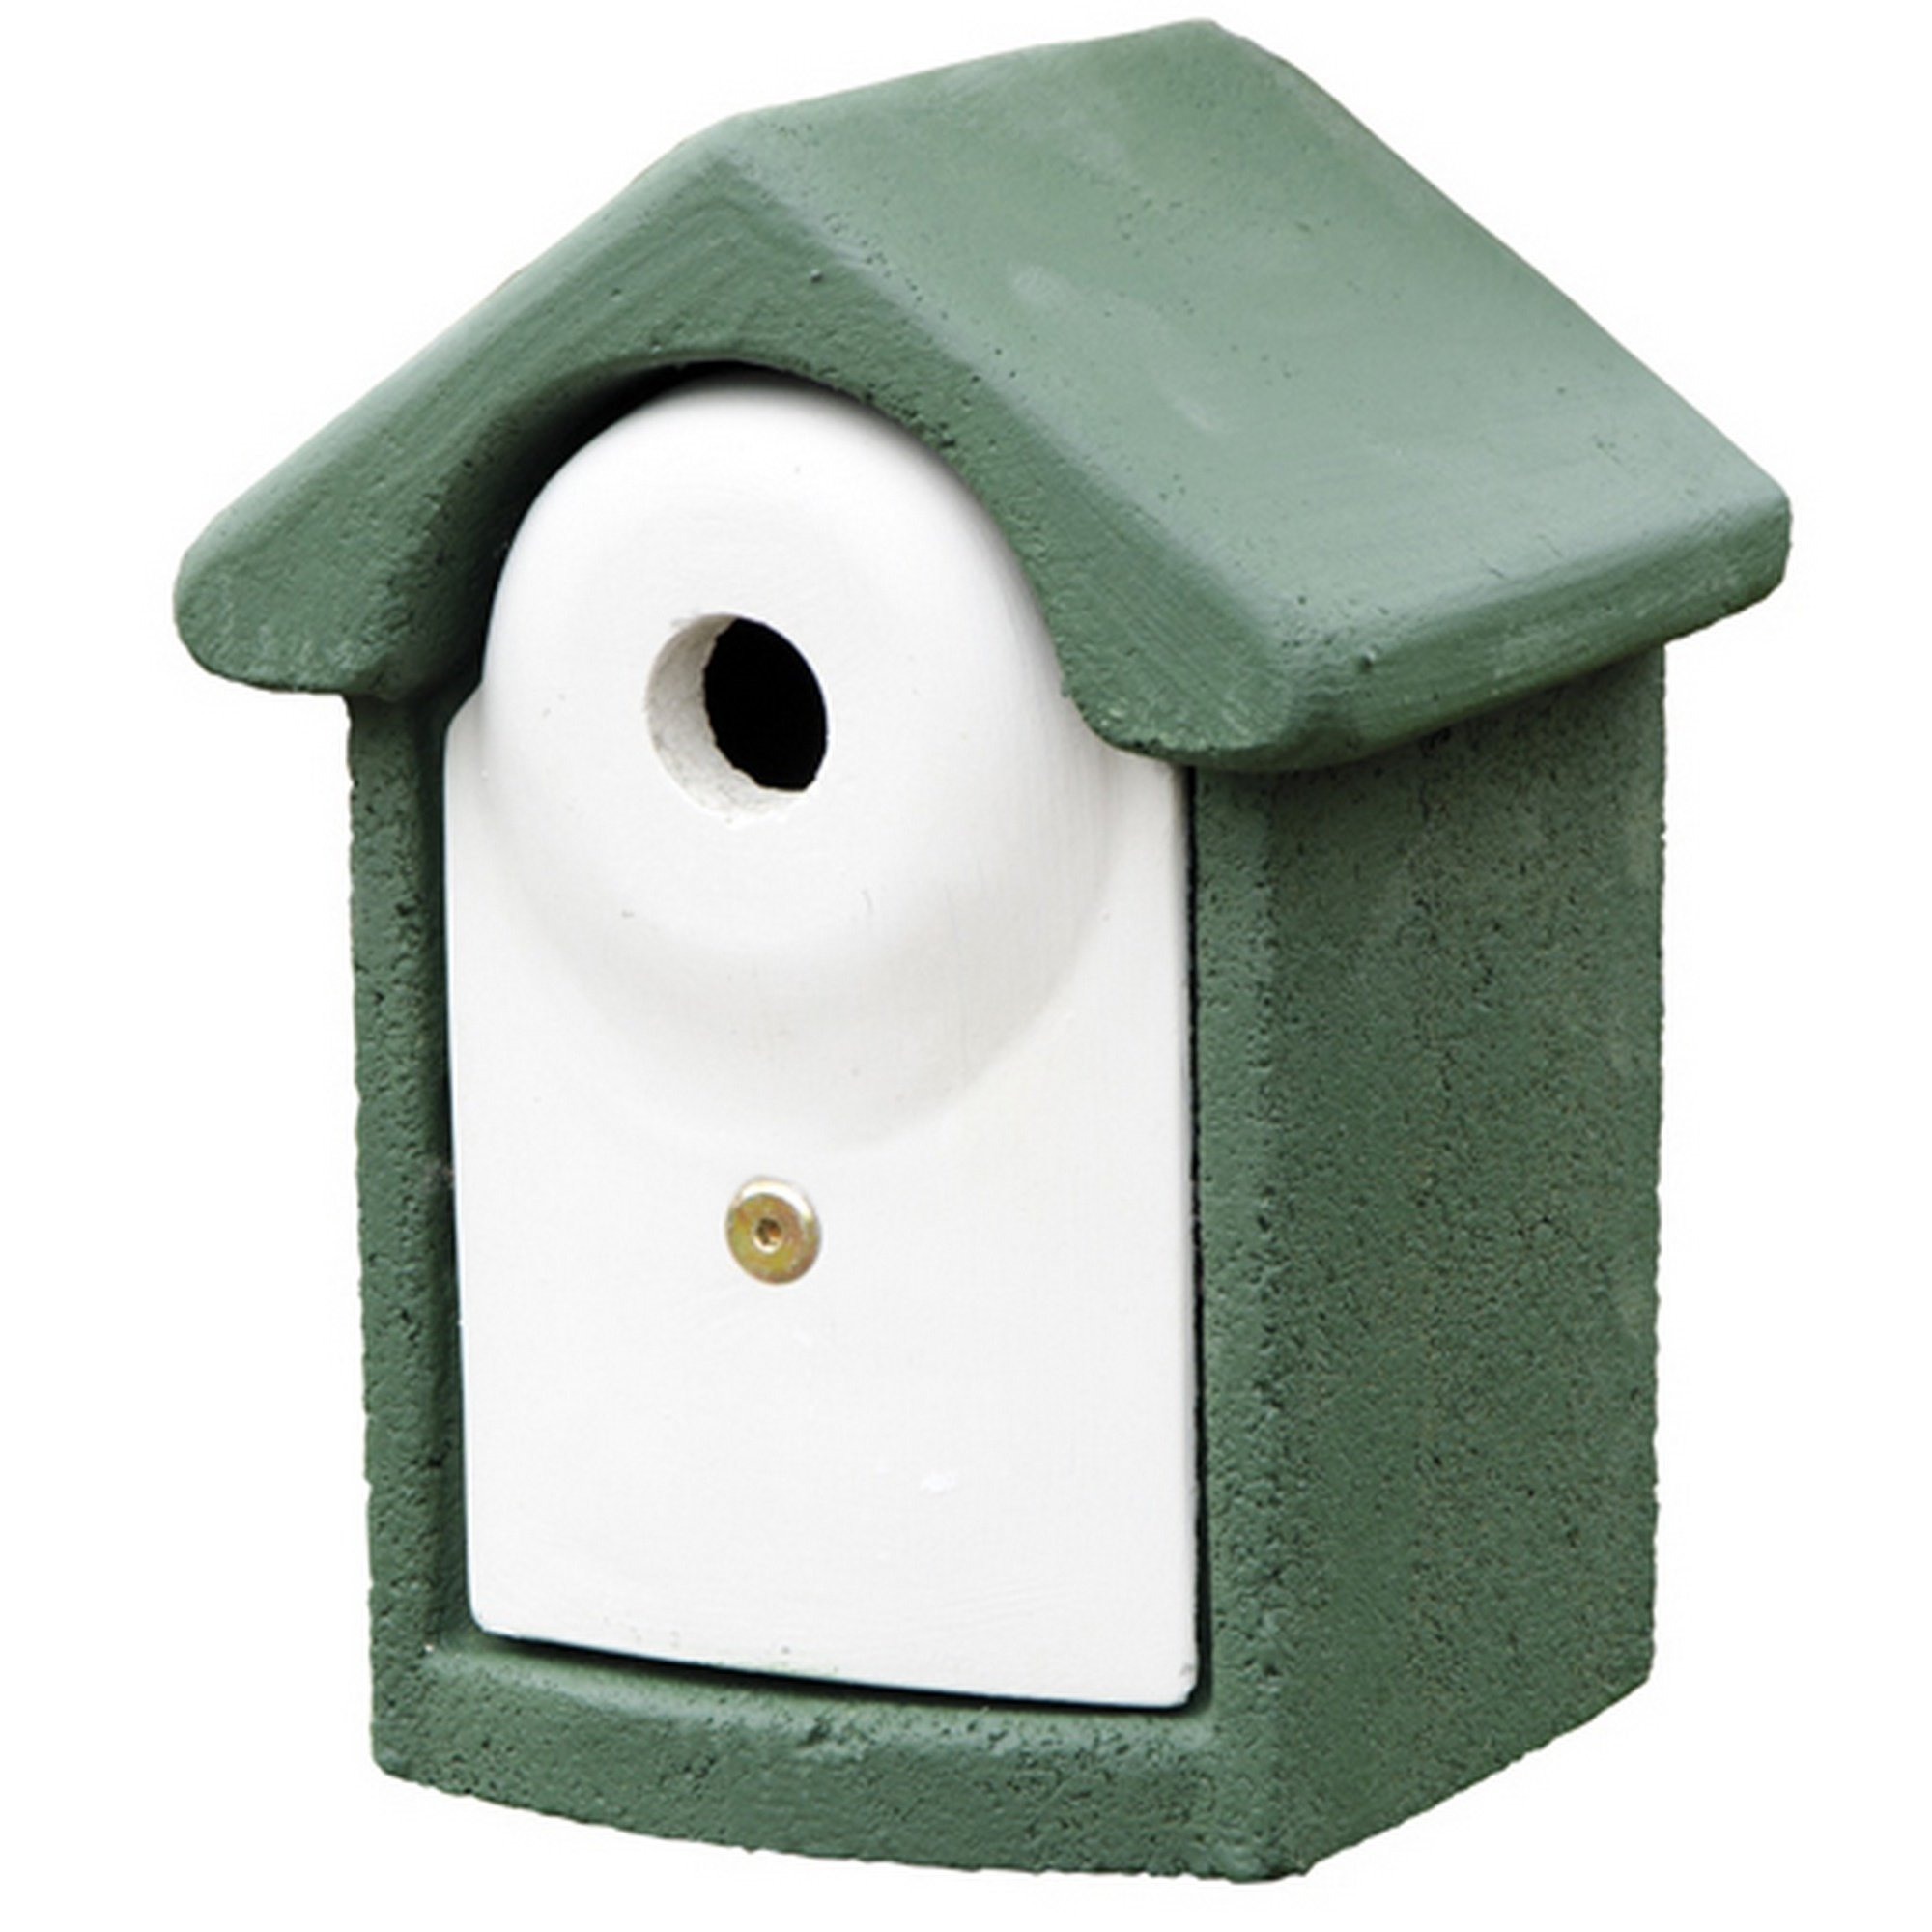 C J WoodStone Durable Nest Box (1.2in) (Green)